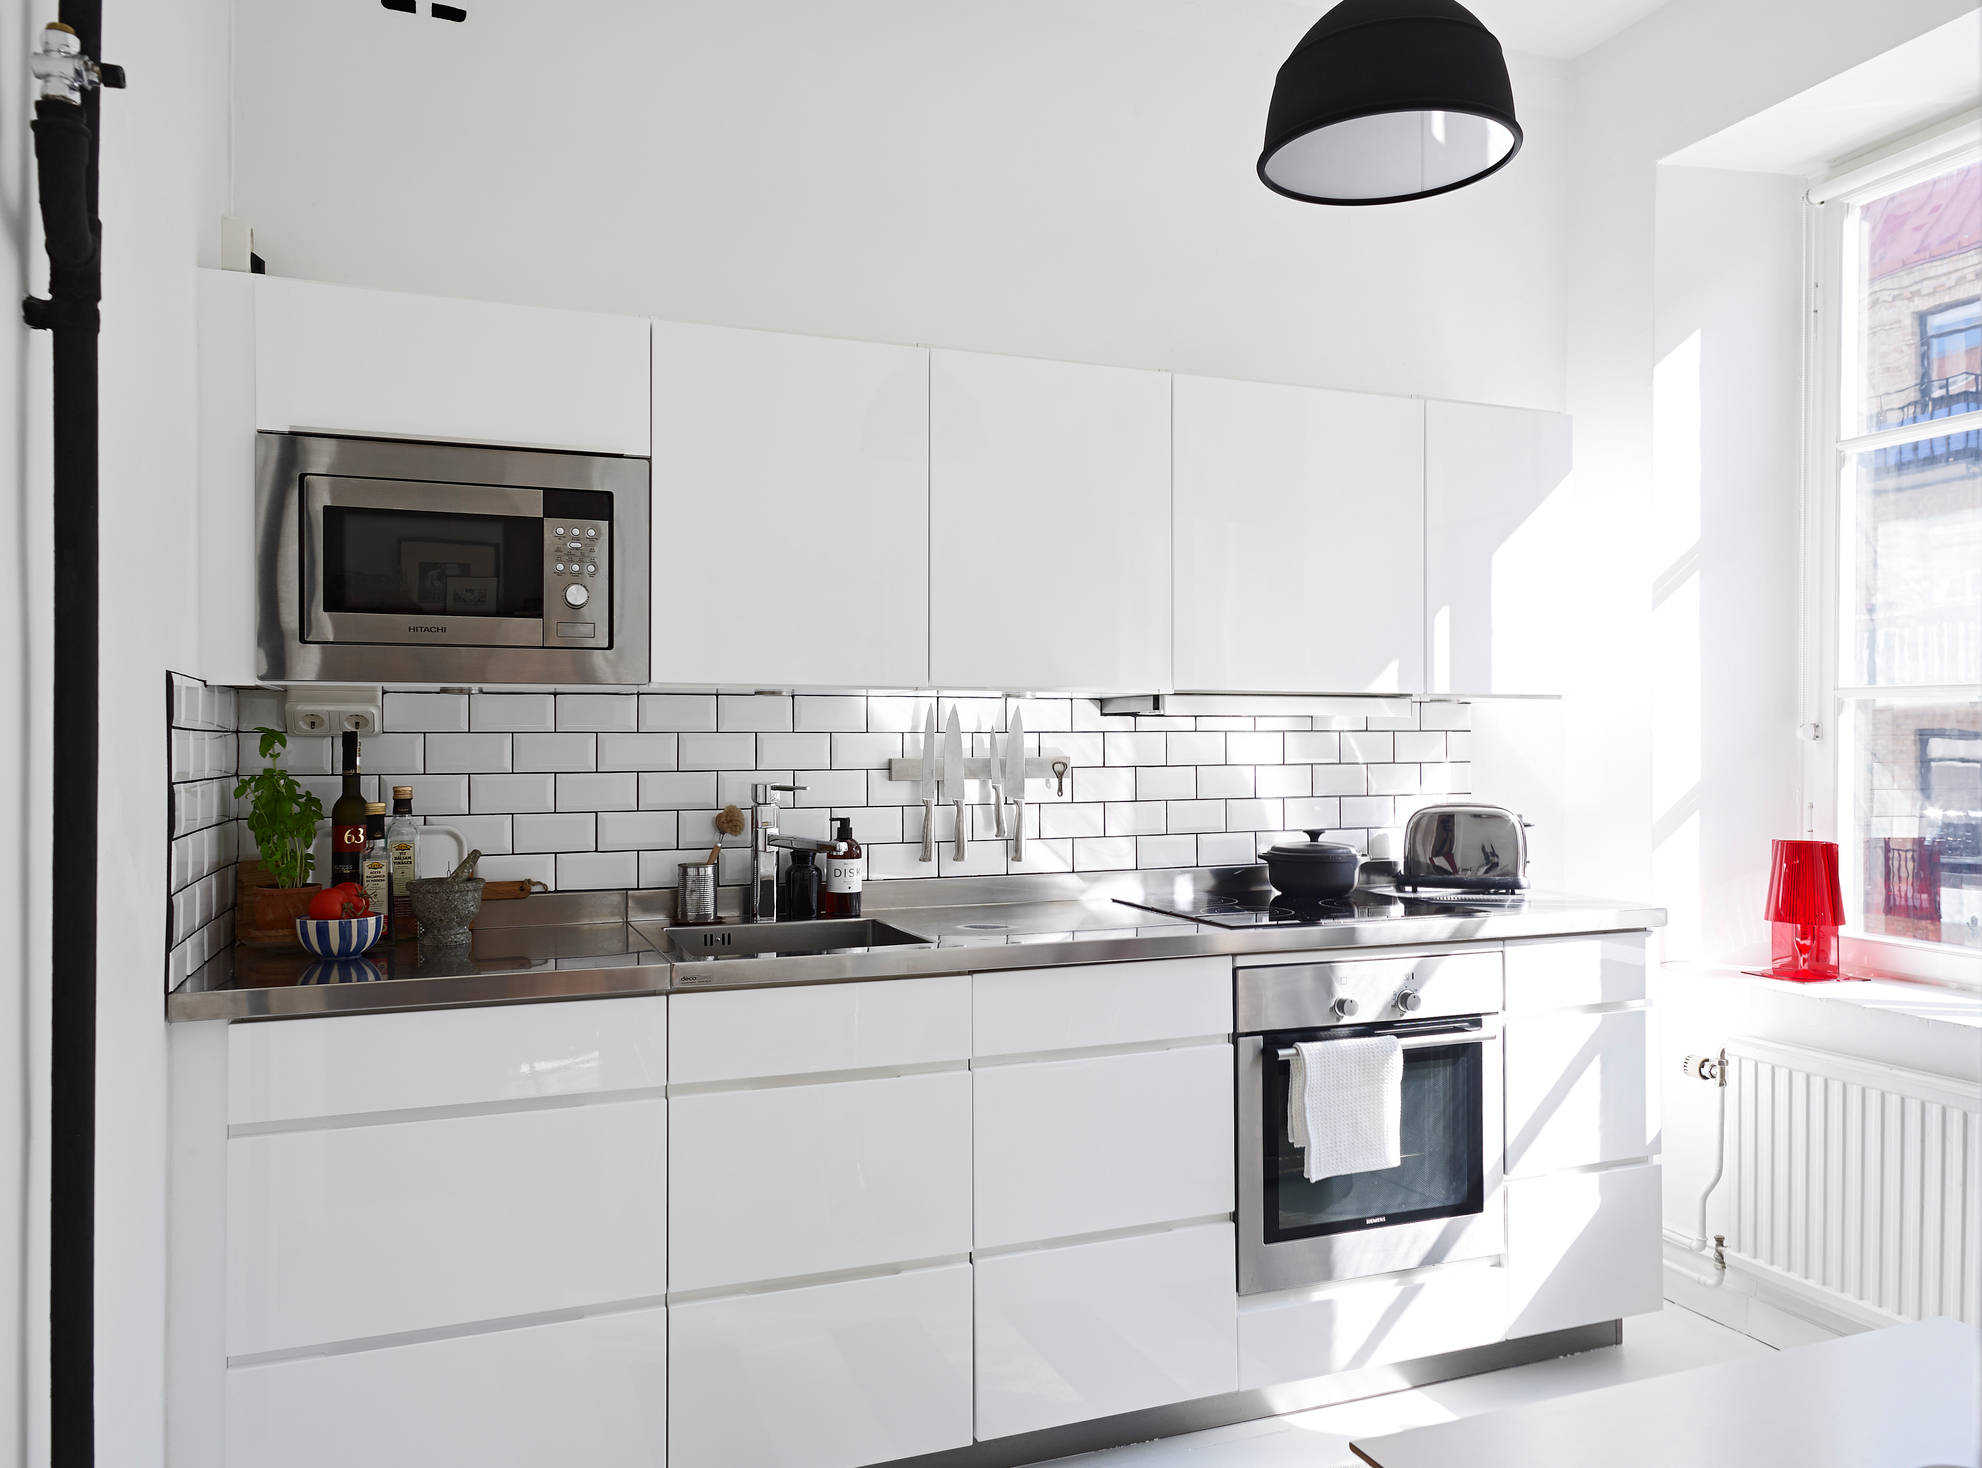 Kitchen subway tiles are back in style 50 inspiring designs dailygadgetfo Choice Image